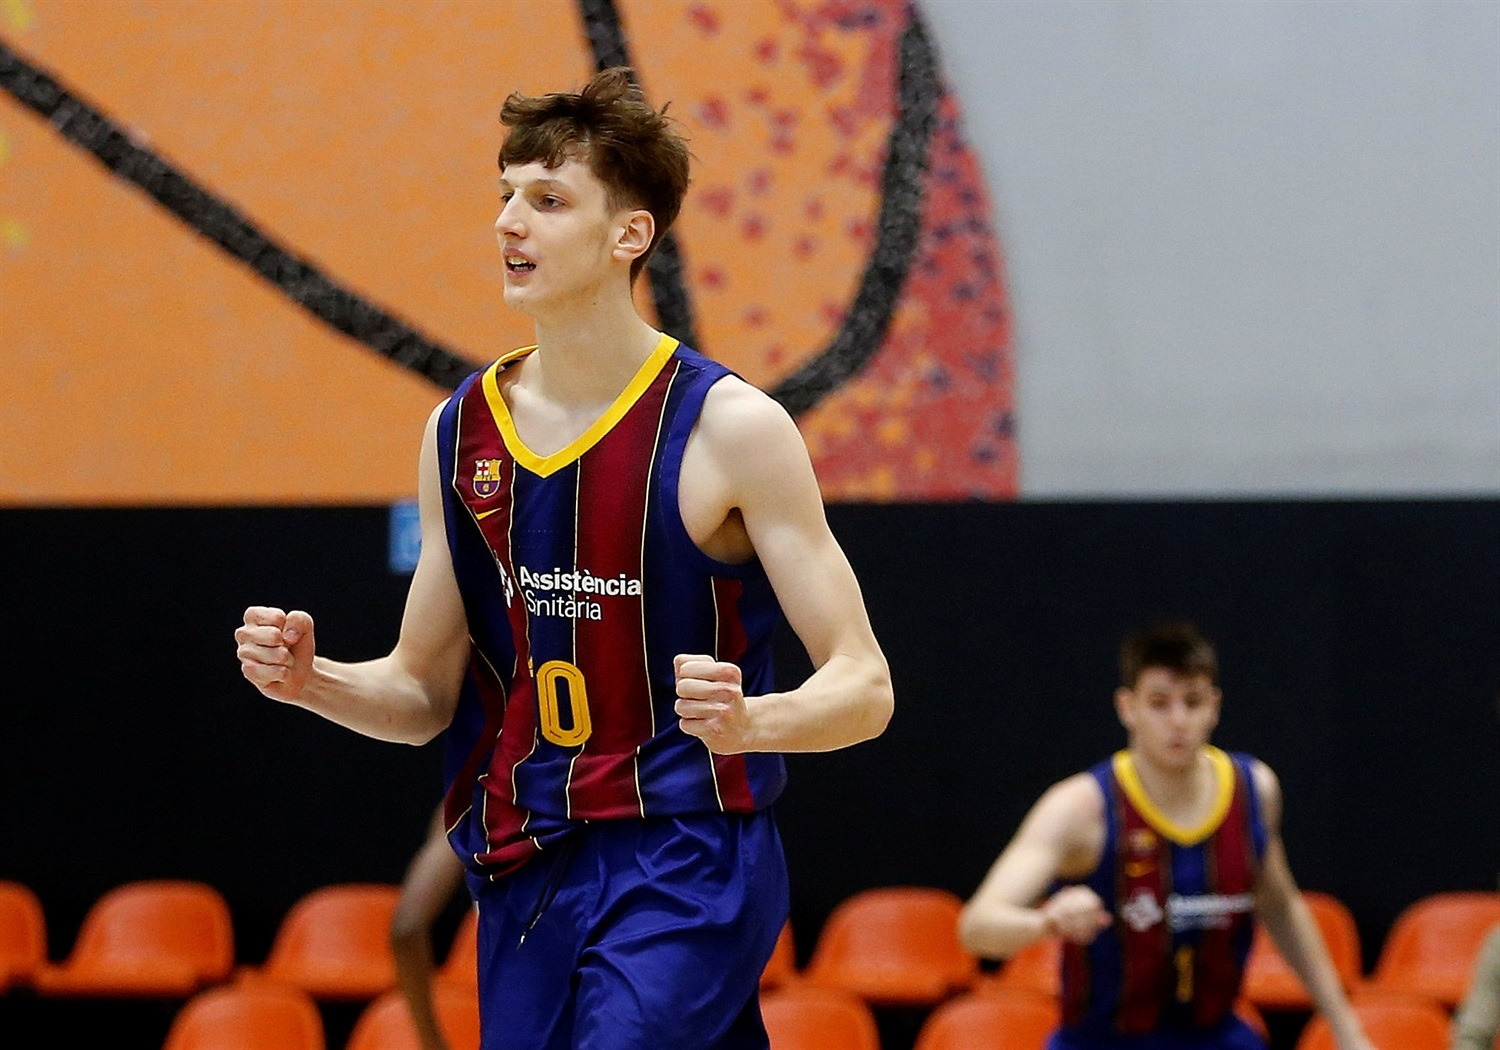 Ian Granja celebrates - U18 FC Barcelona (photo Miguel Angel Polo) - JT20